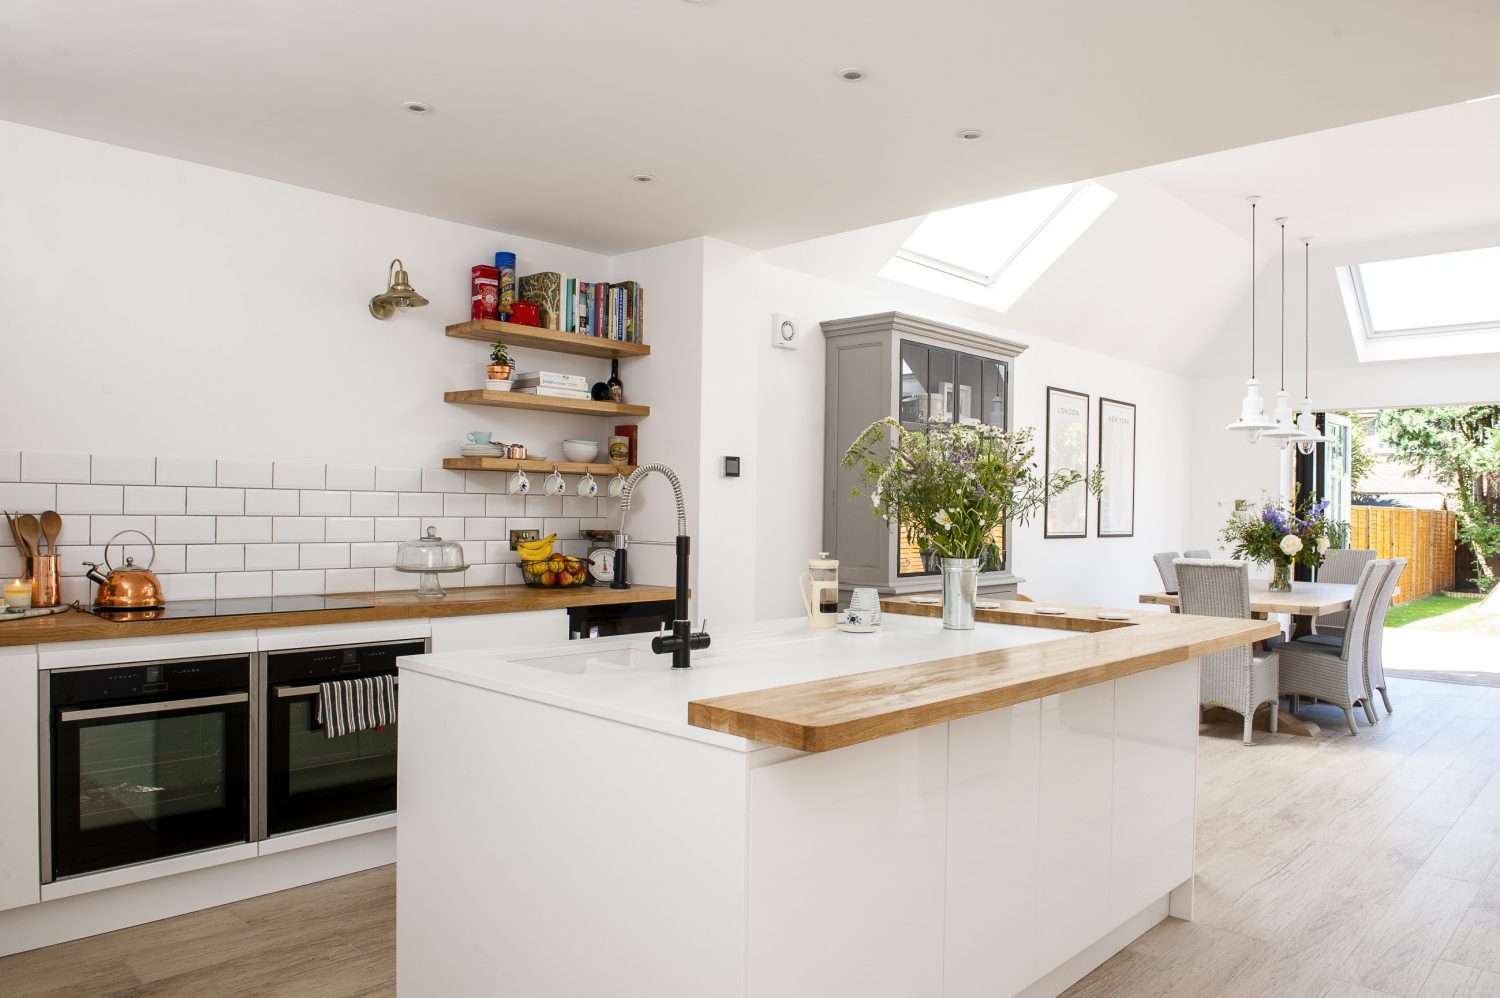 Wood is a recurring theme in the house, softening the all-white kitchen with the wide oak trim around the central island. The copper kettle is from John Lewis and the brass wall lights are from Cox & Cox. The oven is a Neff Slide & Hide, as made famous by Great British Bake Off